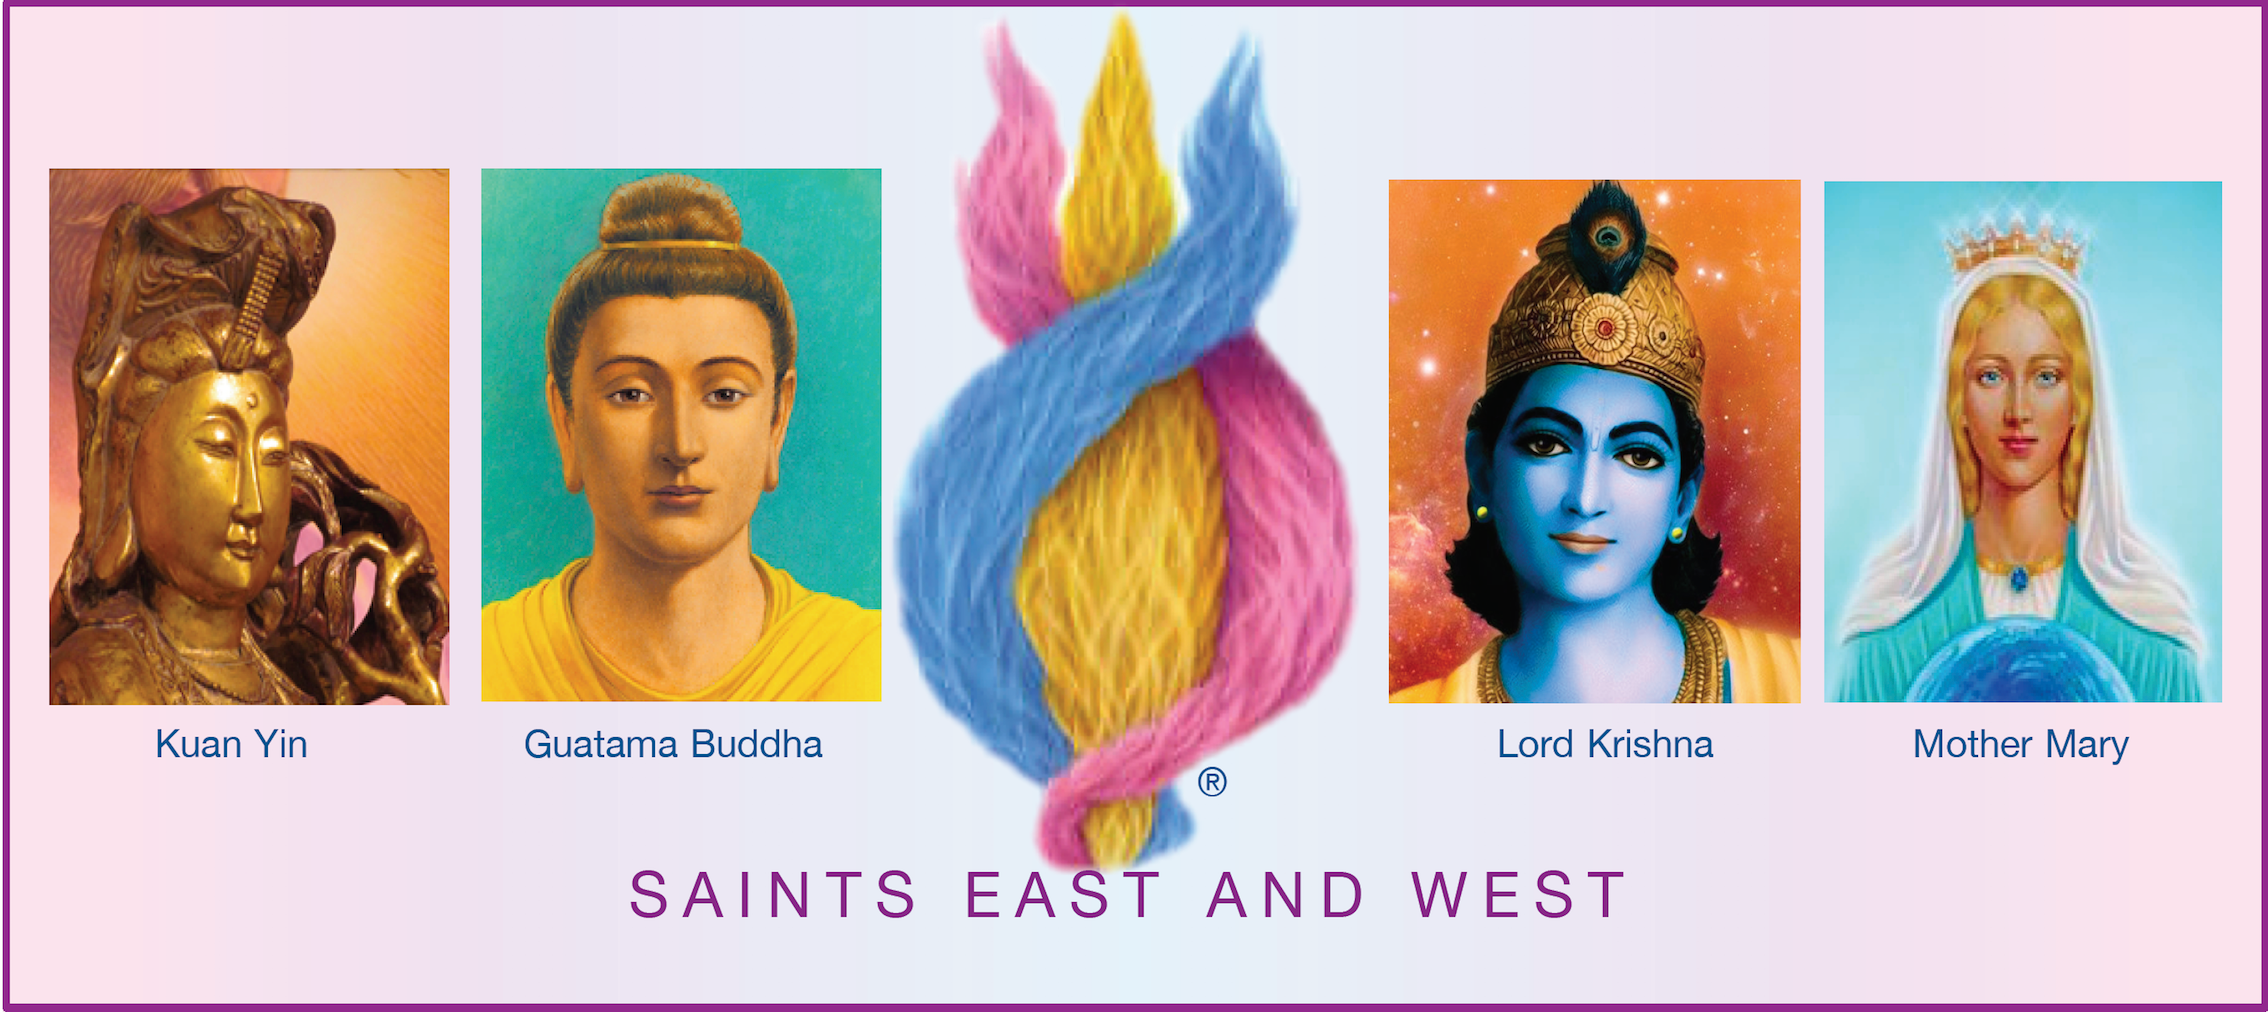 The Saints of East and West